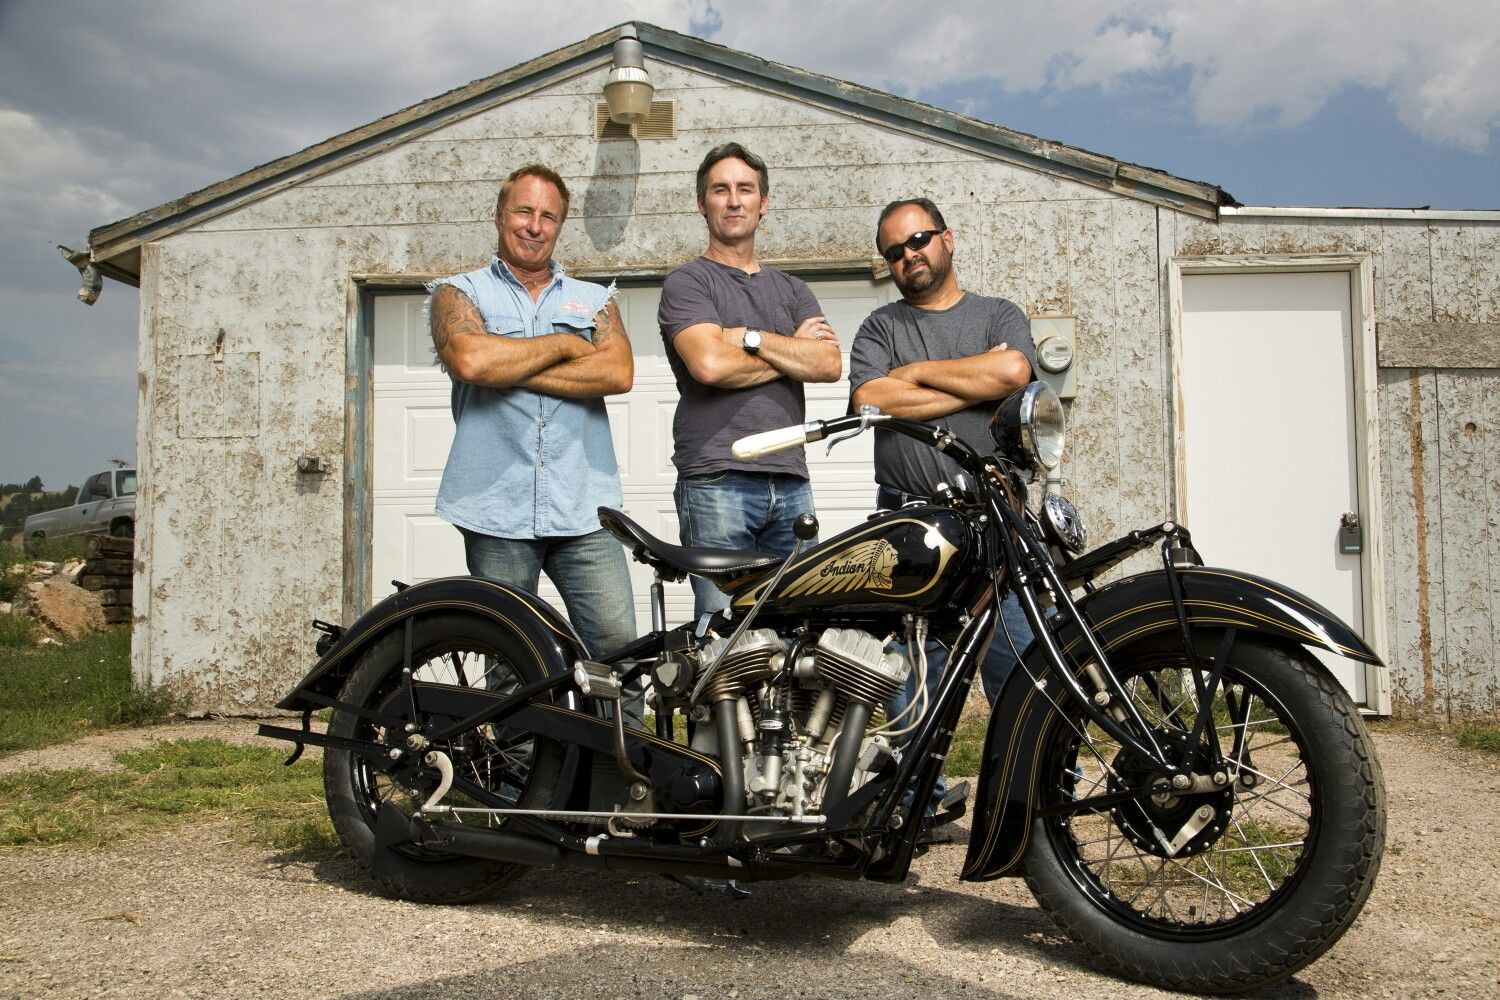 History Channel S American Pickers A Must See Tv Show Lots Of Neat Bikes And Cars People Places To